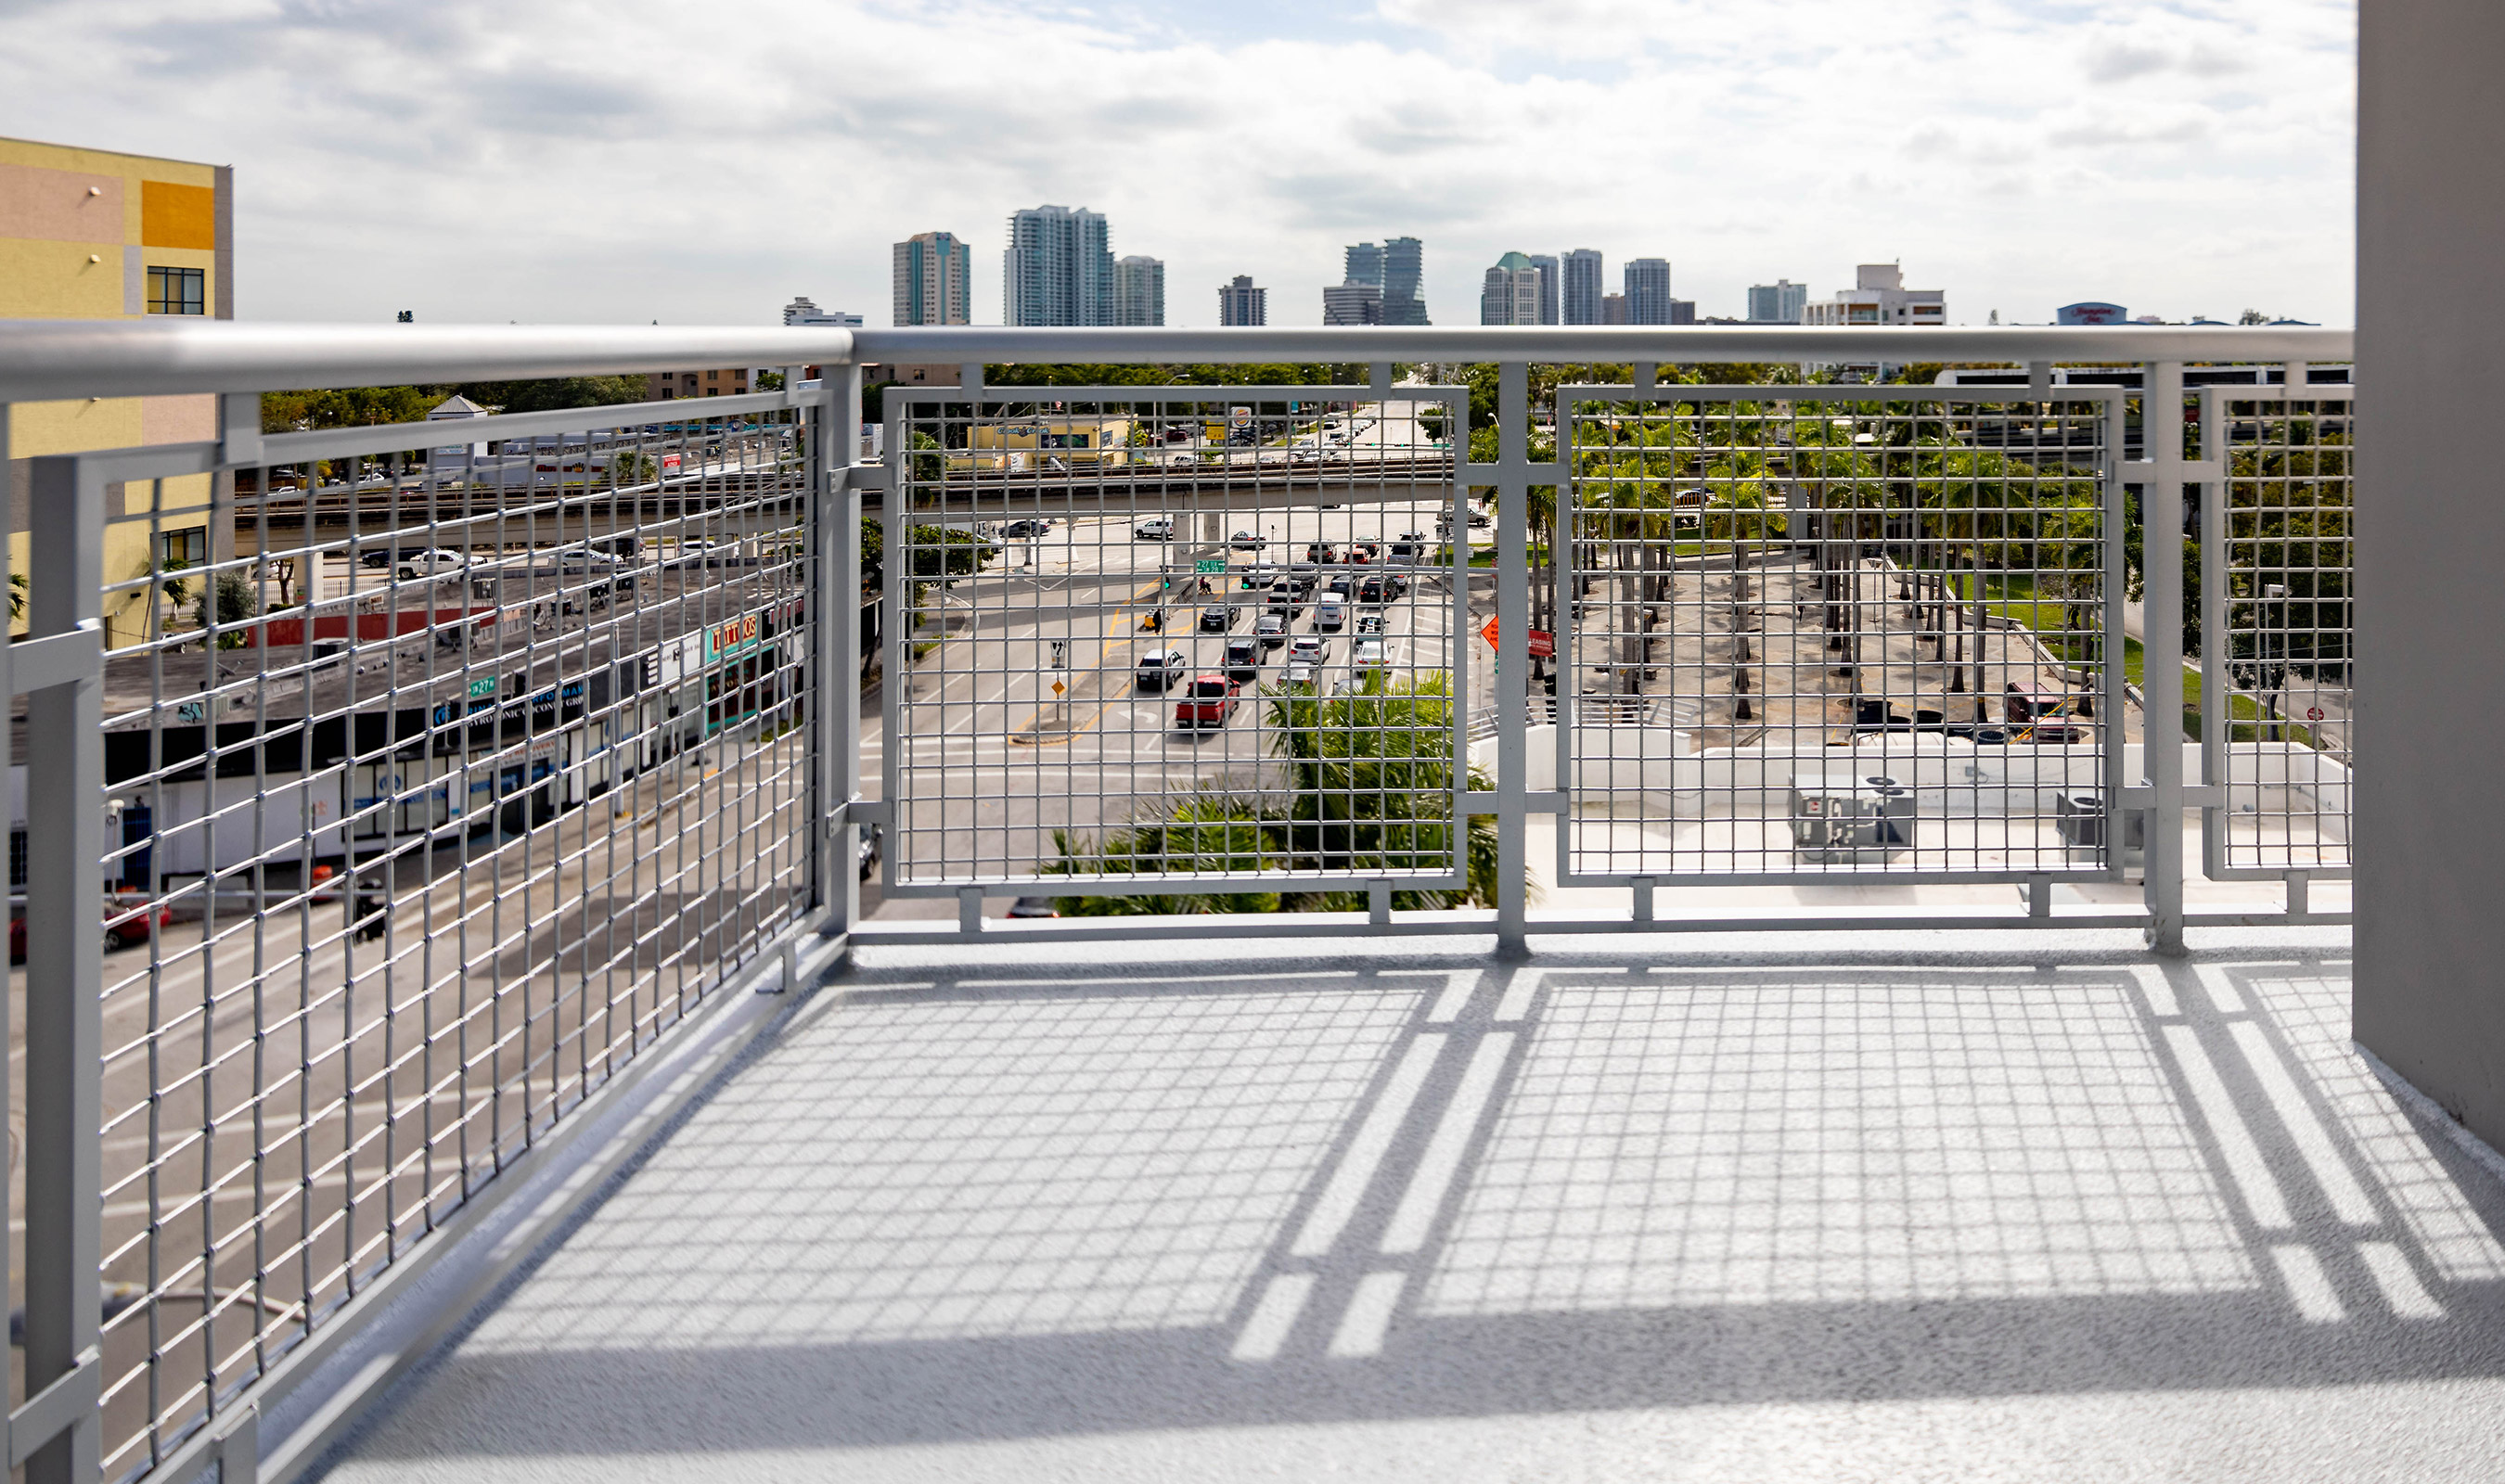 The skyline of Miami can easily be seen with the large percent open area of Banker Wire's L-64 woven wire mesh.